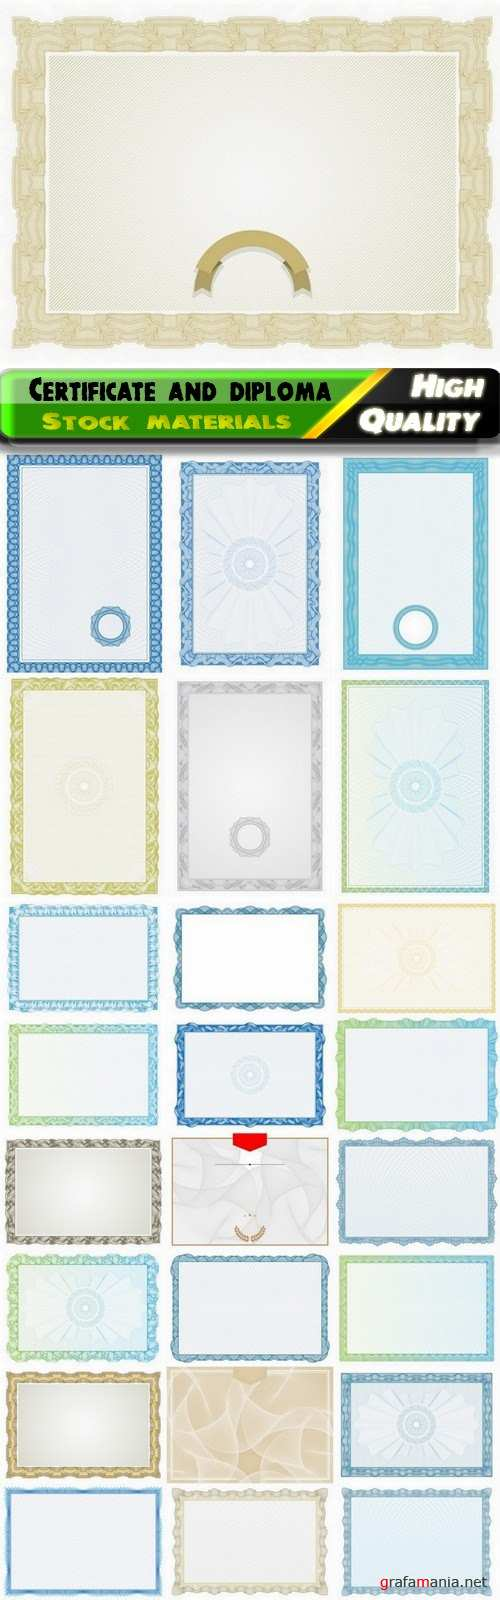 Blank certificate and diploma guilloche decorative frame 2 25 Eps